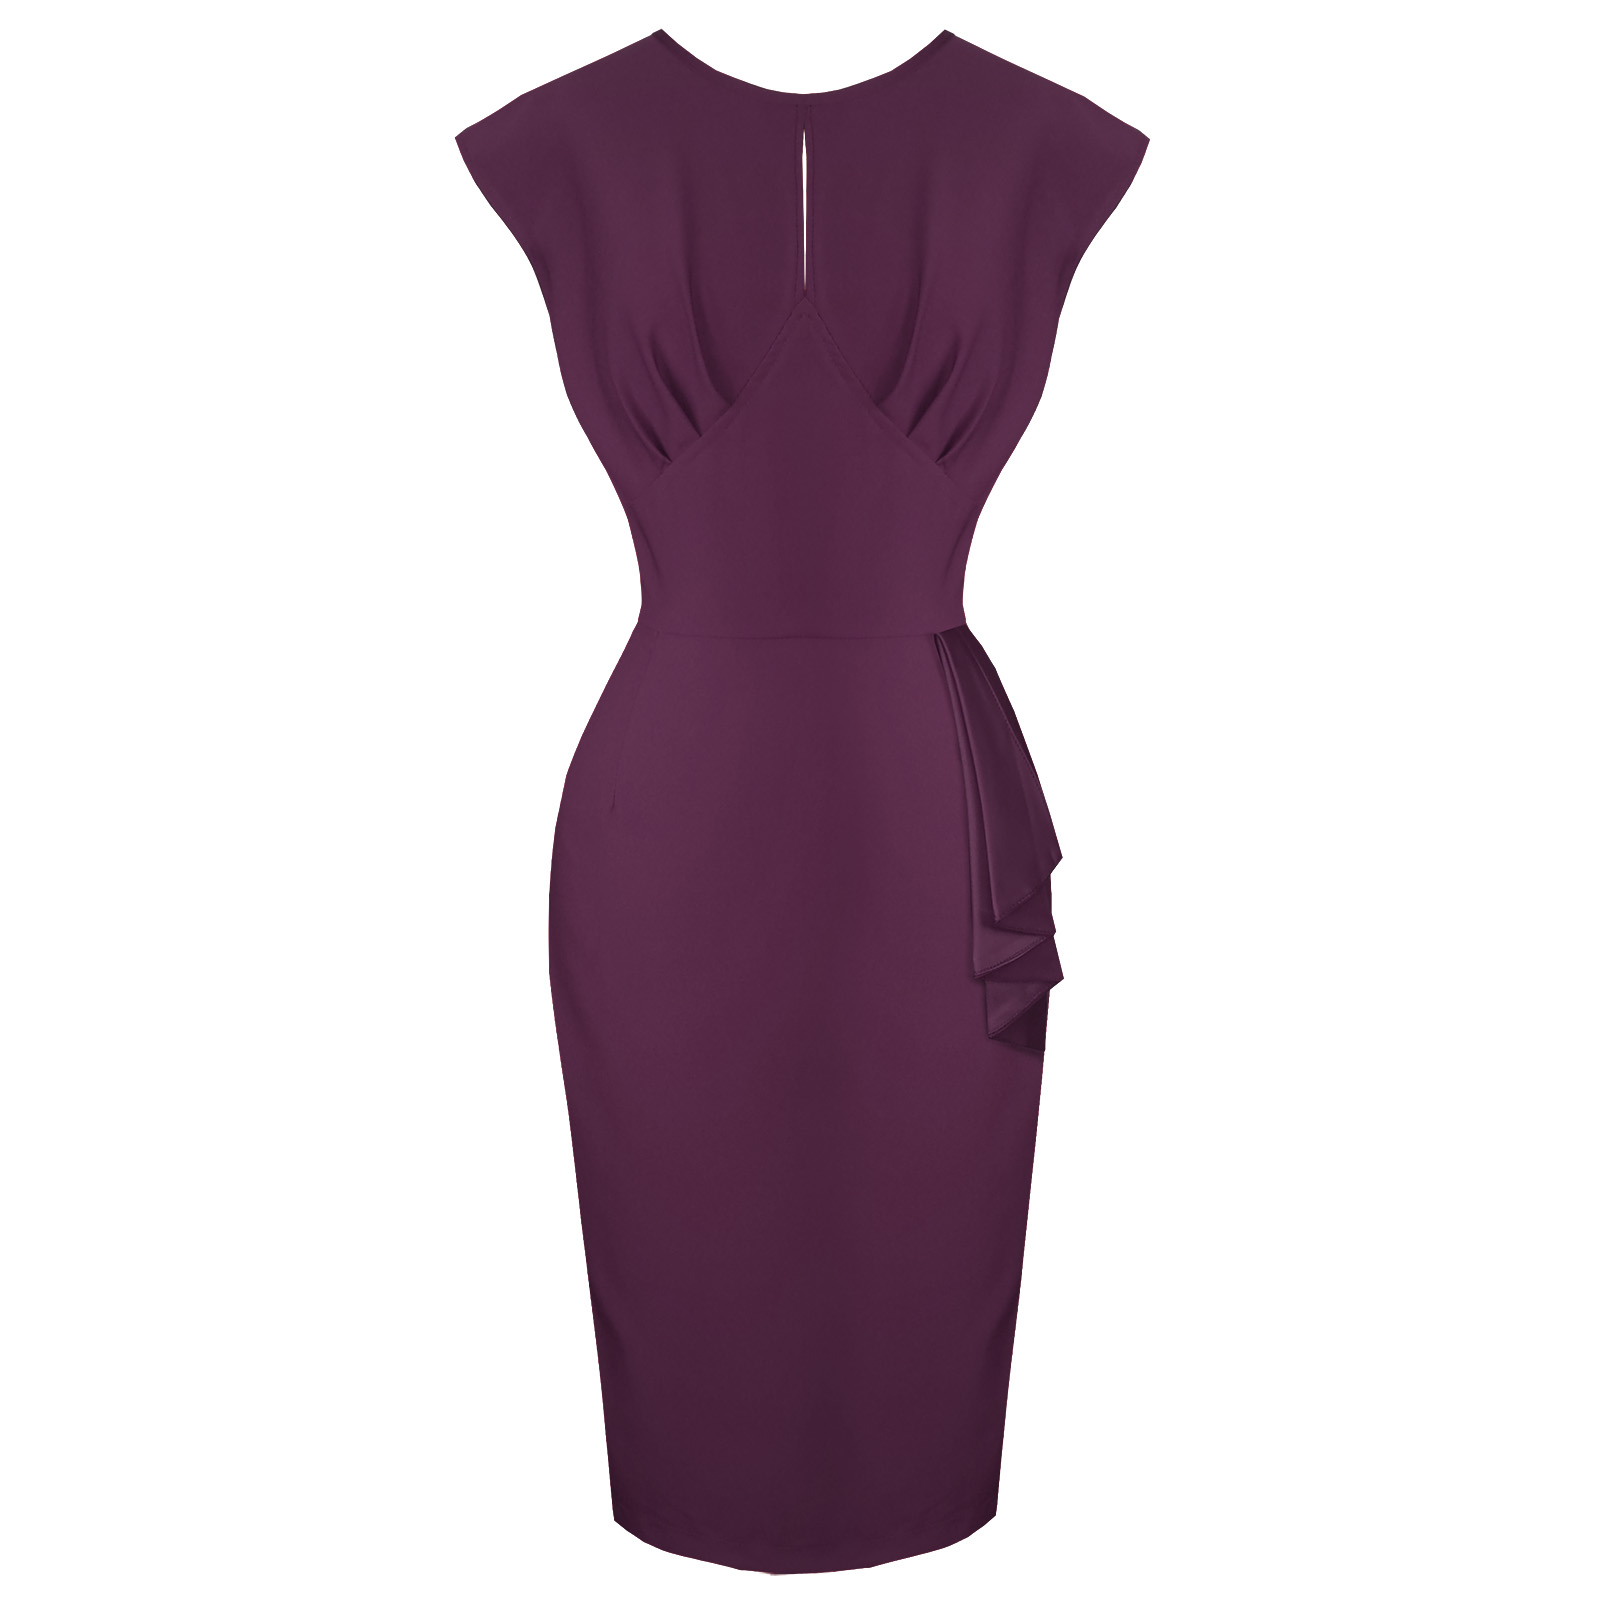 289f71975 Hell Bunny Bernadette Purple Pencil Dress | Plus Size Dresses | Starlet  Vintage